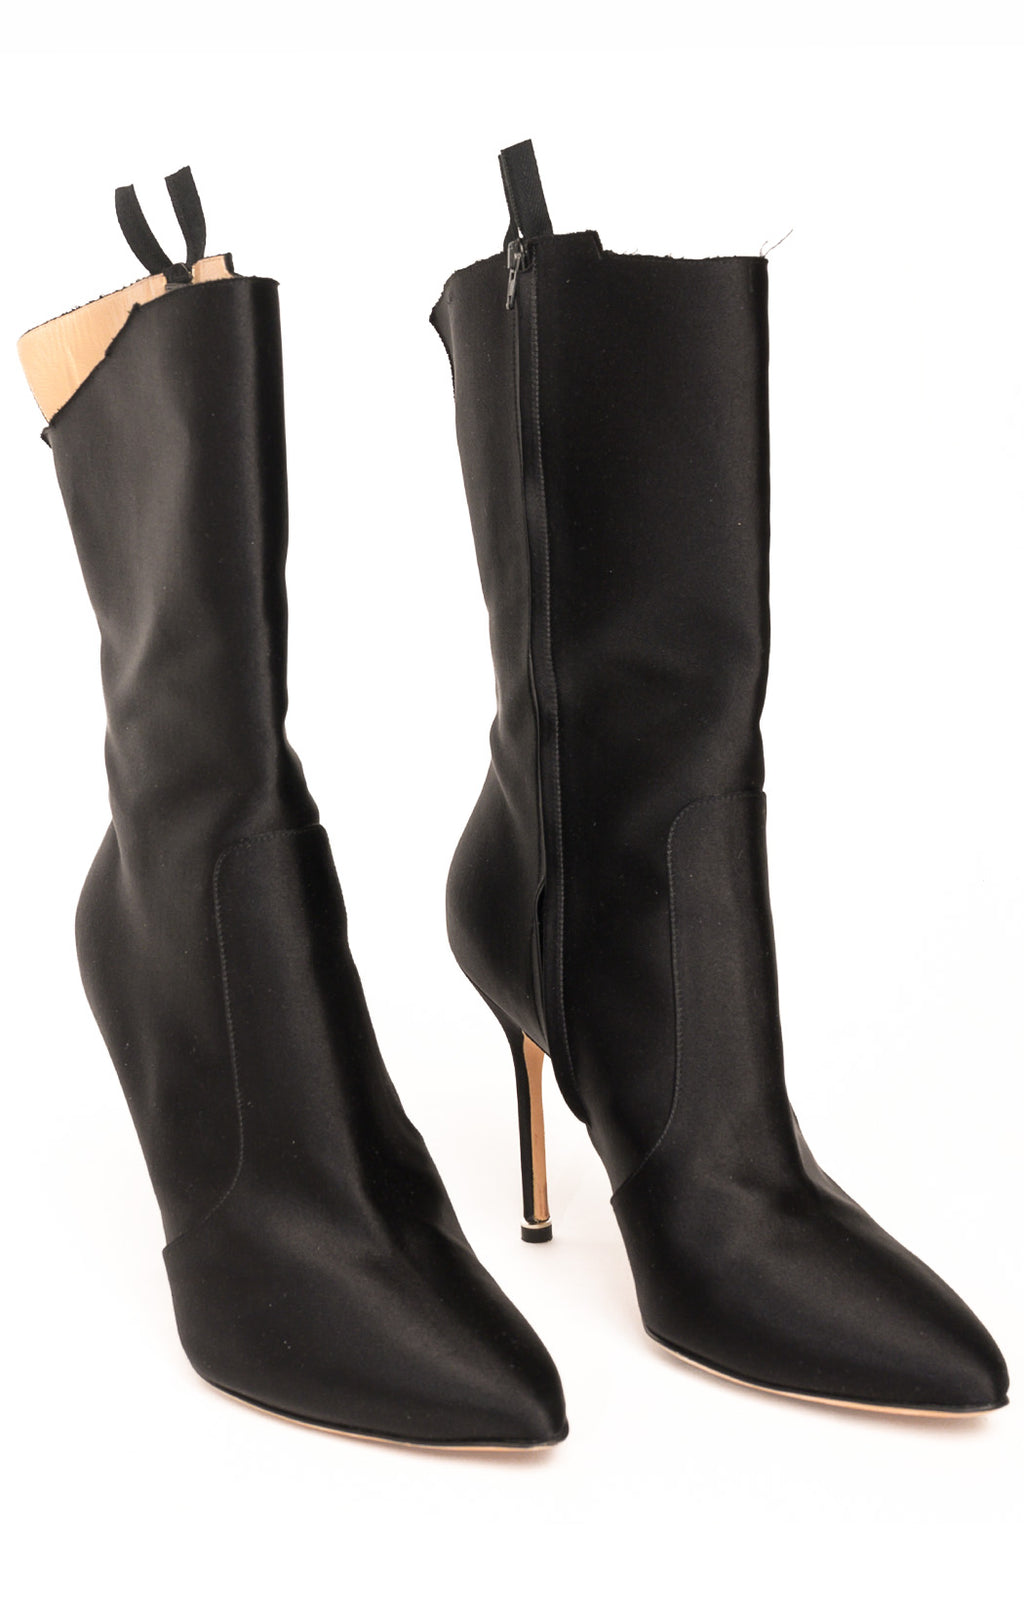 Front view of MANOLO BLAHNIK Boots Size: 39/9